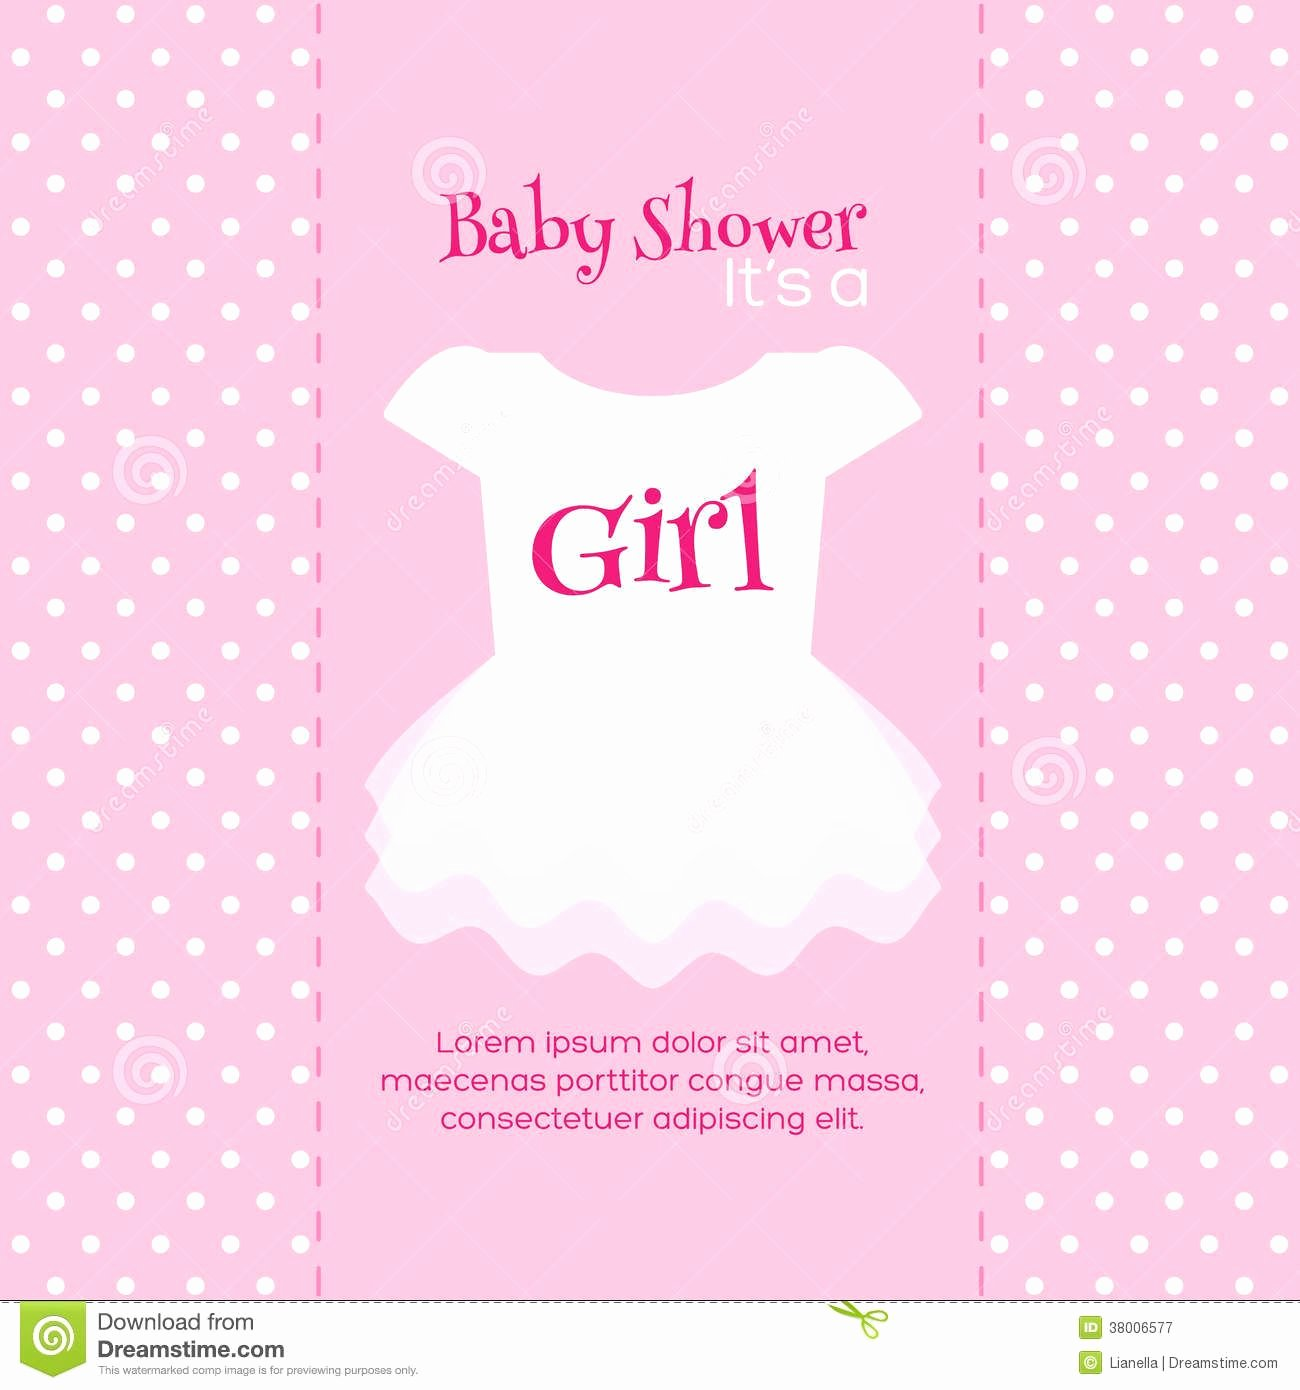 Free Printable Baby Shower Card Beautiful Design Free Printable Baby Shower Invitations for Girls